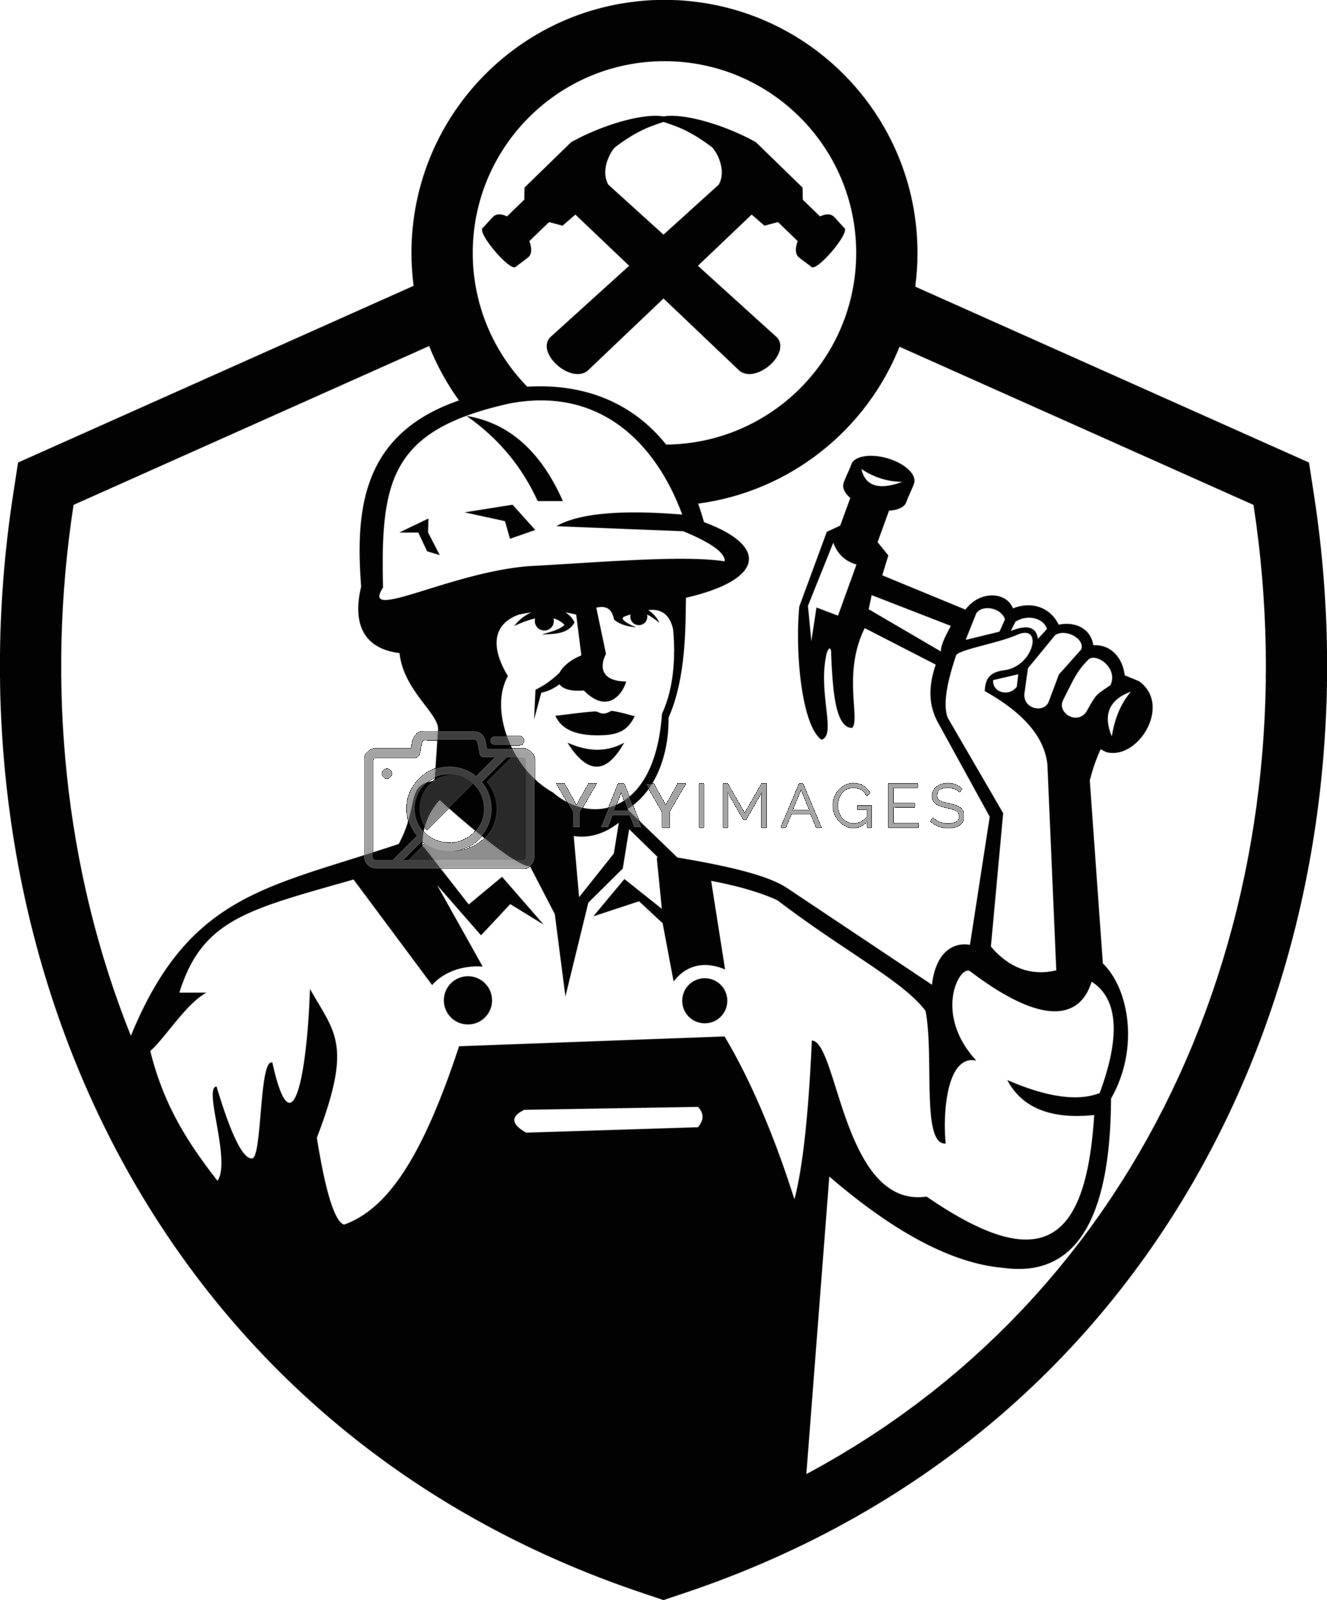 Black and white illustration of a carpenter builder holding hammer set inside shield crest shape on isolated white background done in retro style.